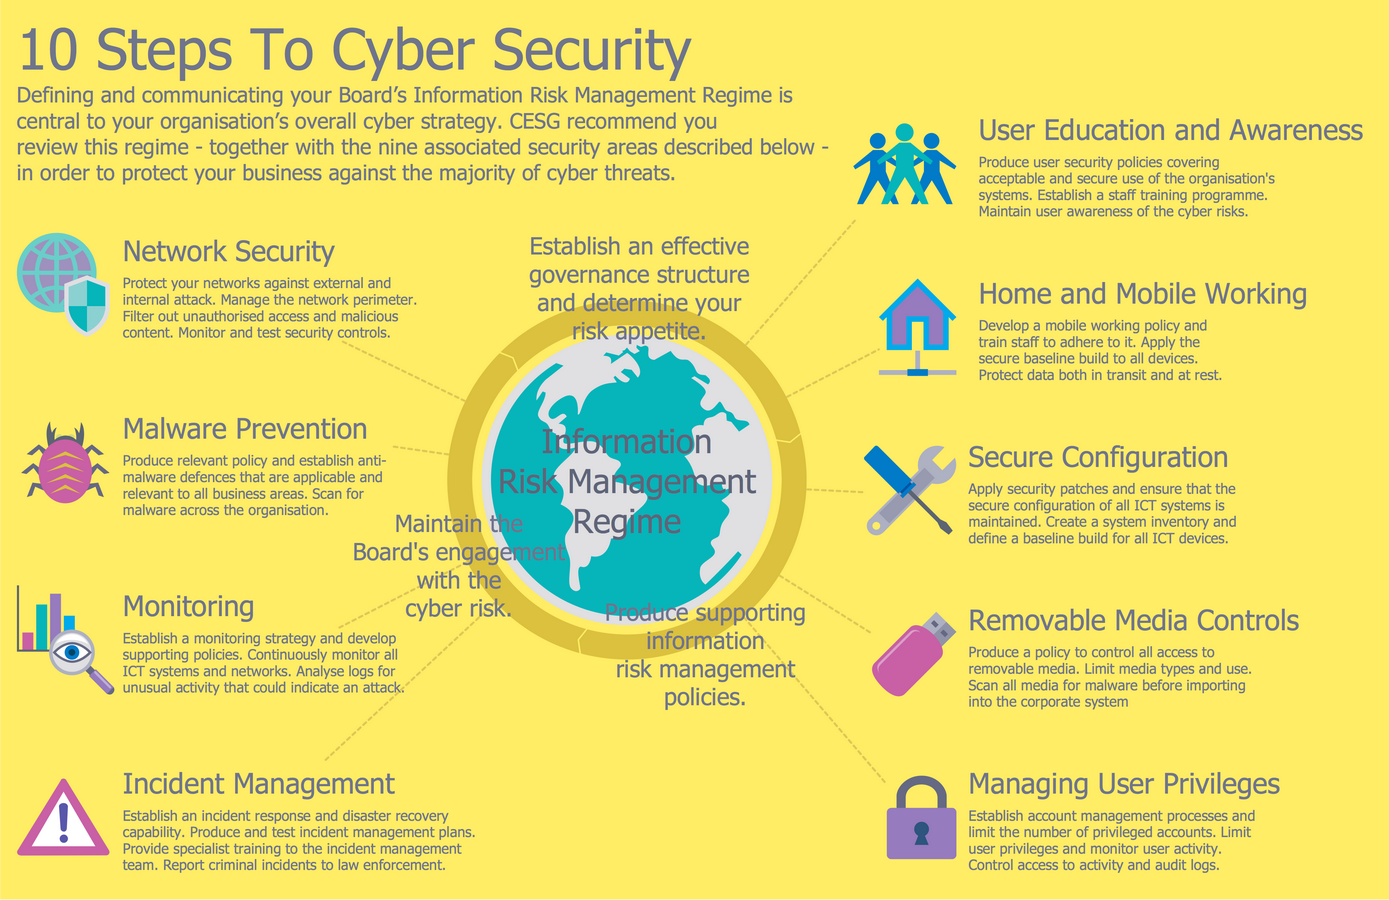 network security diagrams solution   conceptdraw com  steps to cyber security infographic